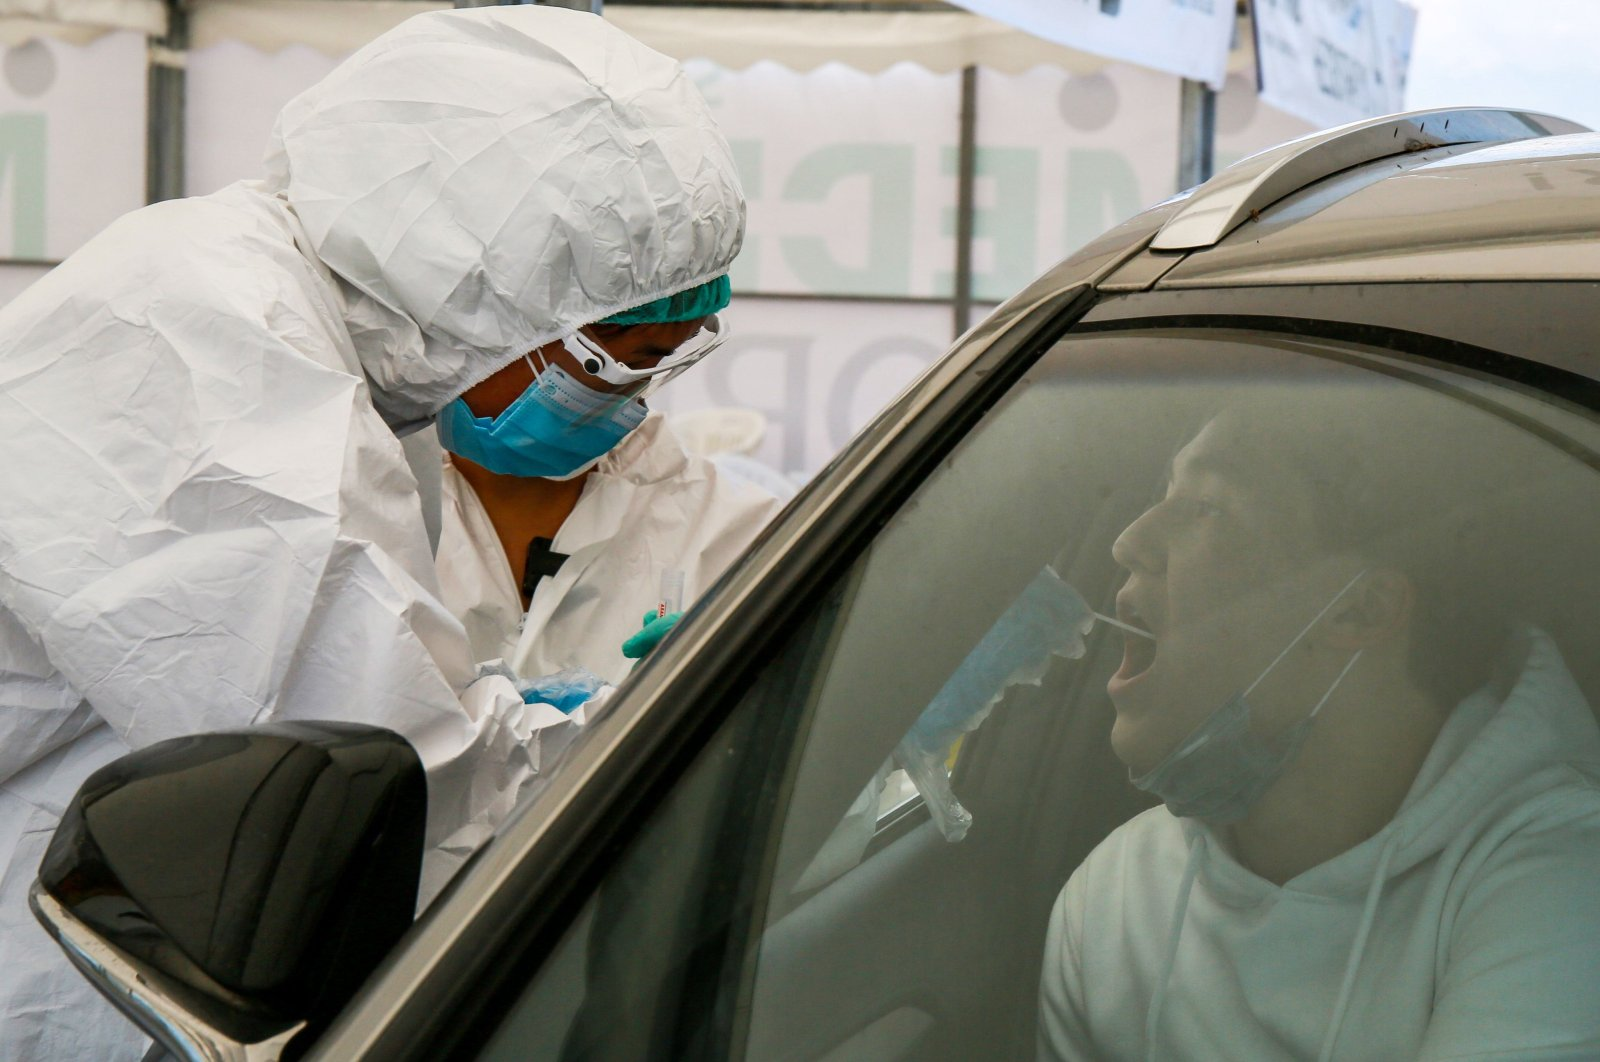 A health care worker collects sample for a COVID-19 test near Halyk Arena, Almaty, Kazakhstan, July 5, 2020. (AFP Photo)